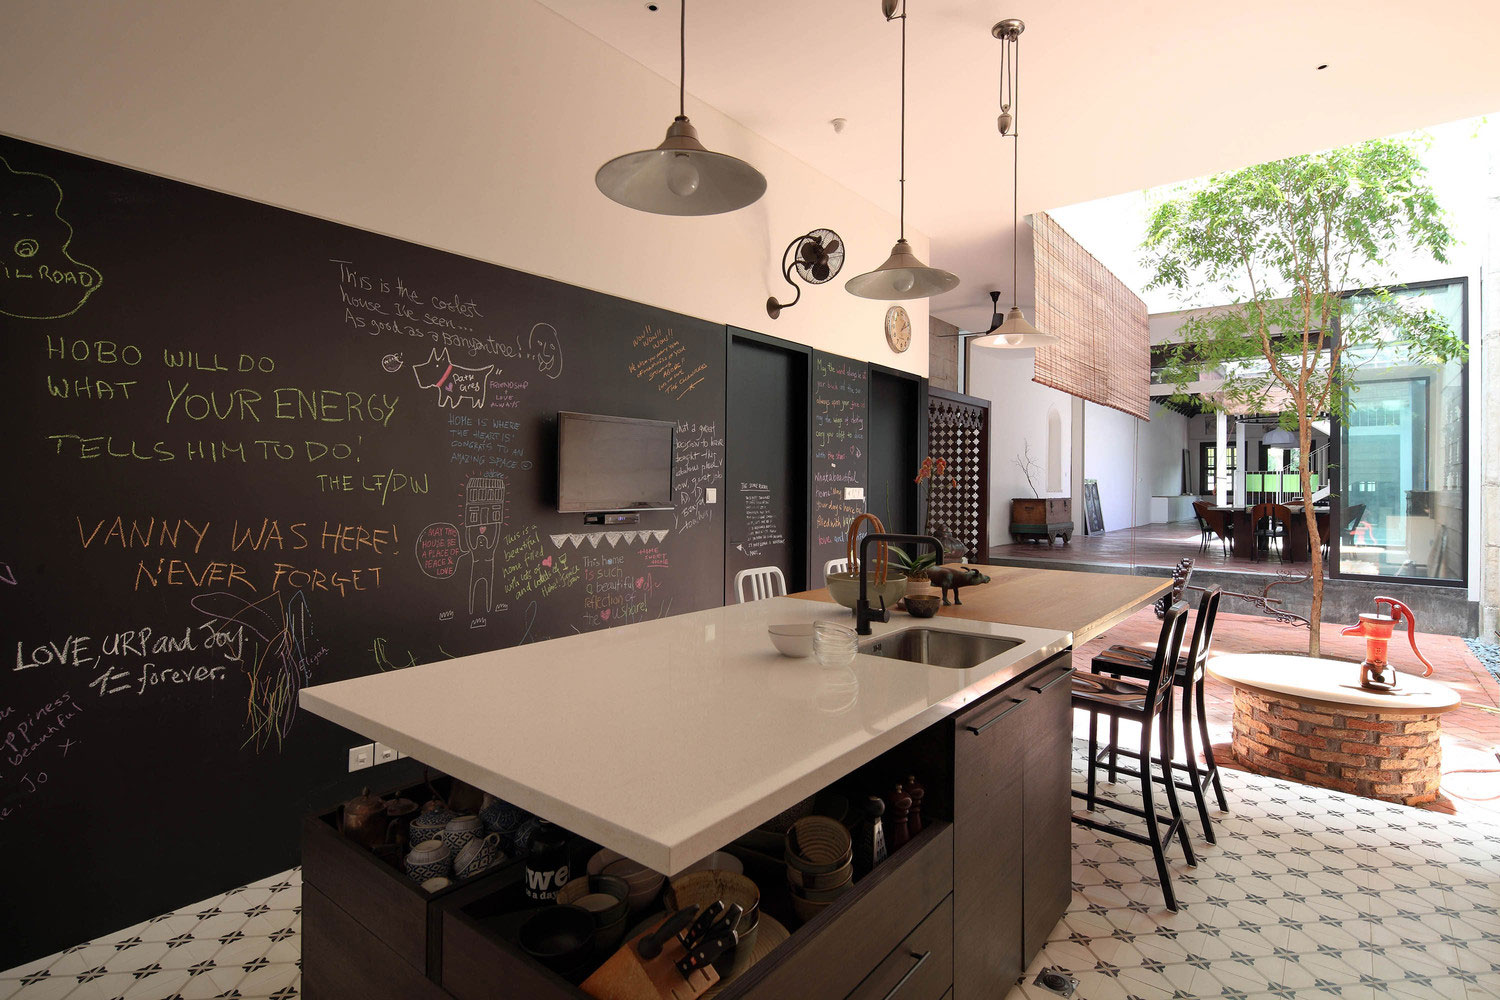 part of the open space kitchen